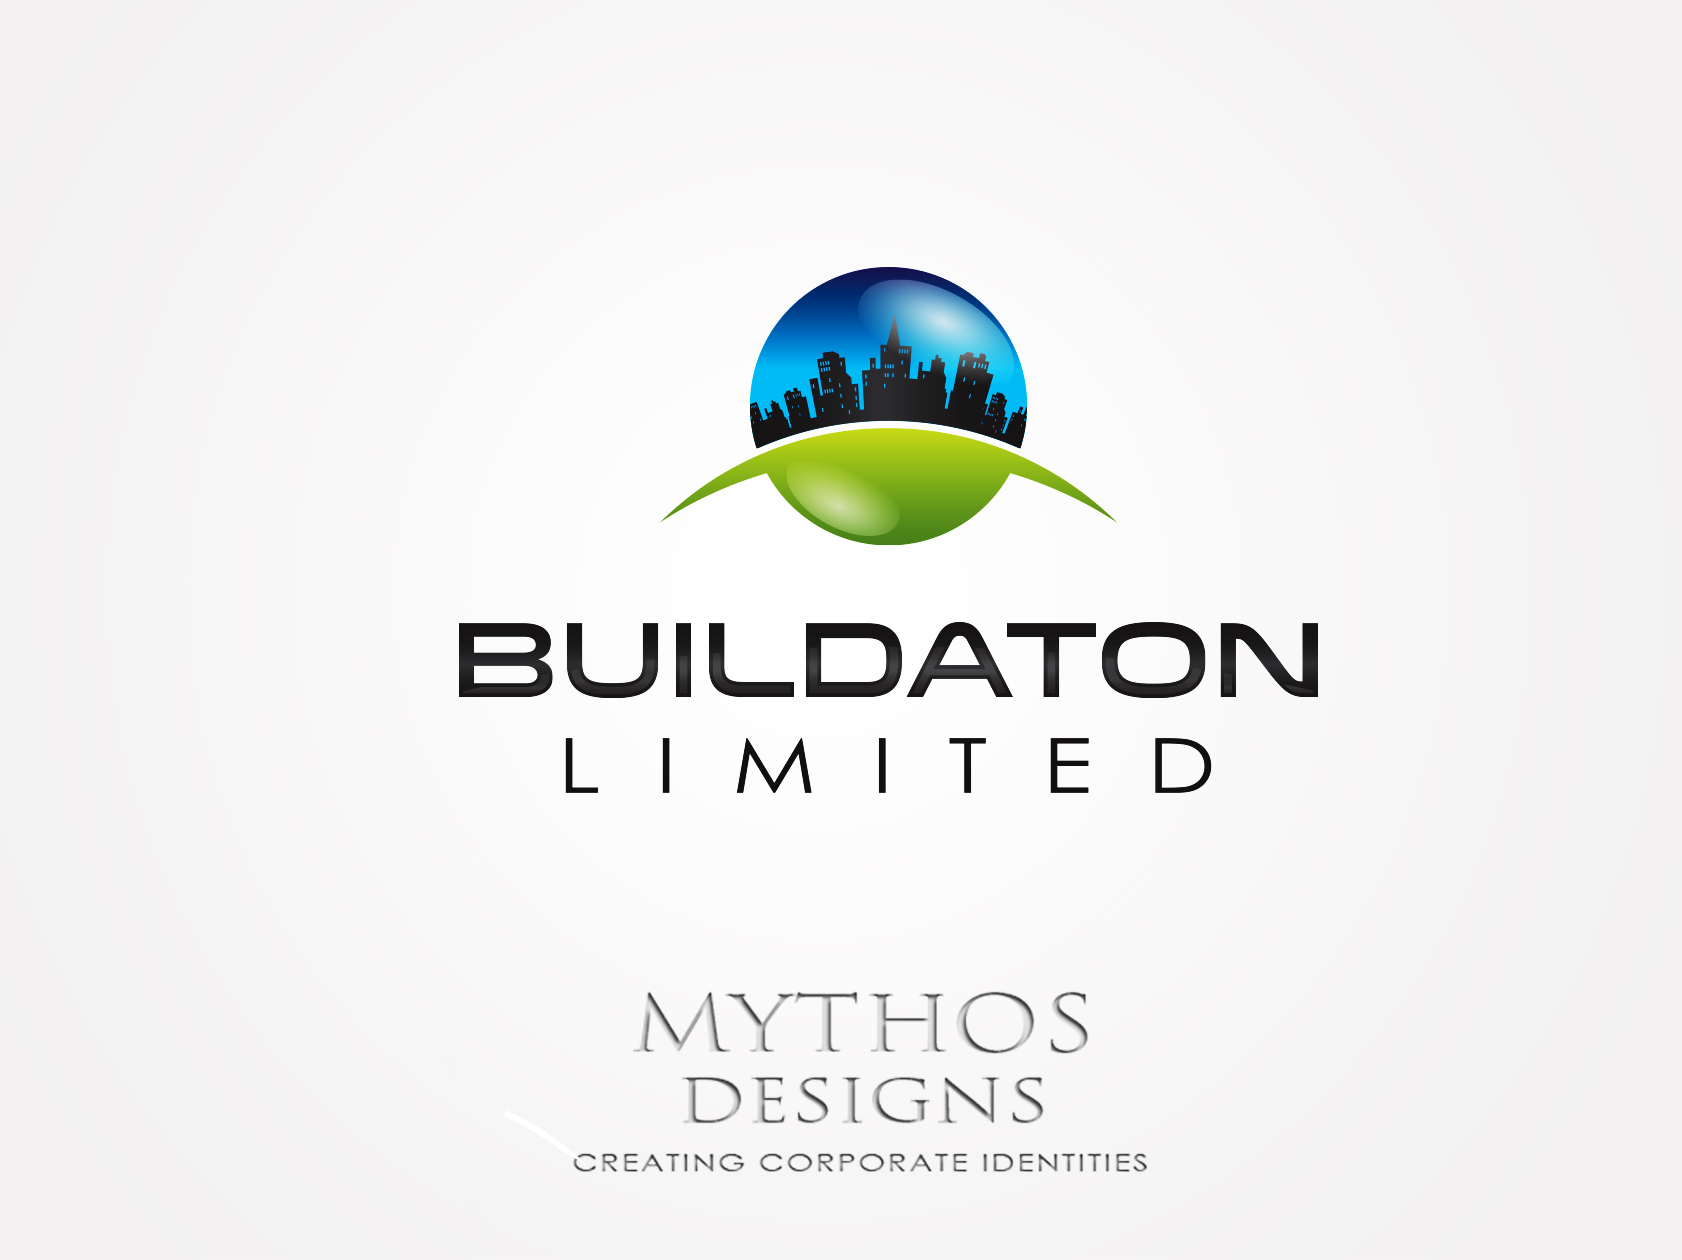 Logo Design by Mythos Designs - Entry No. 15 in the Logo Design Contest Artistic Logo Design for Buildaton Limited.